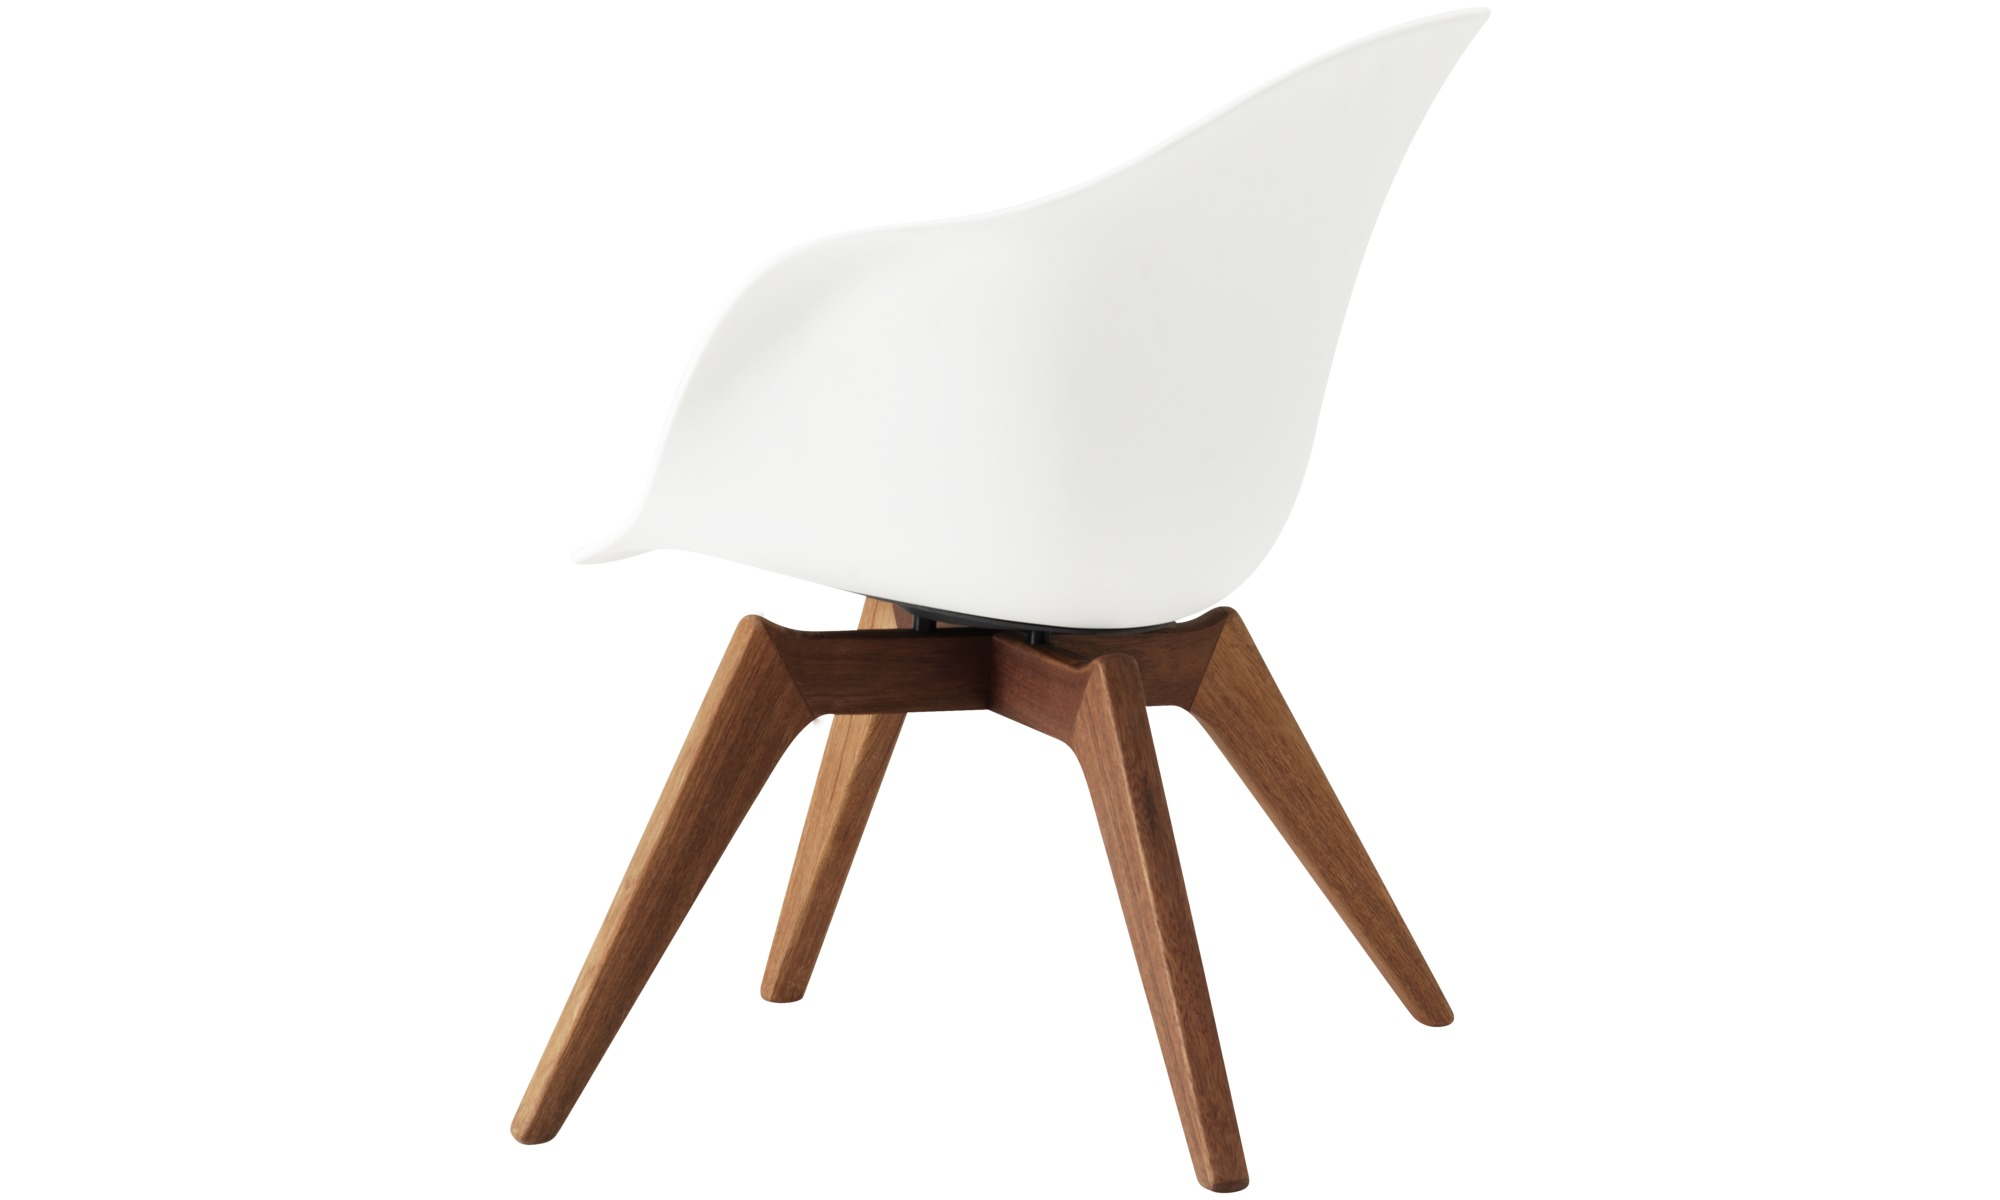 Outdoor chairs Adelaide Lounge chair for in and outdoor use